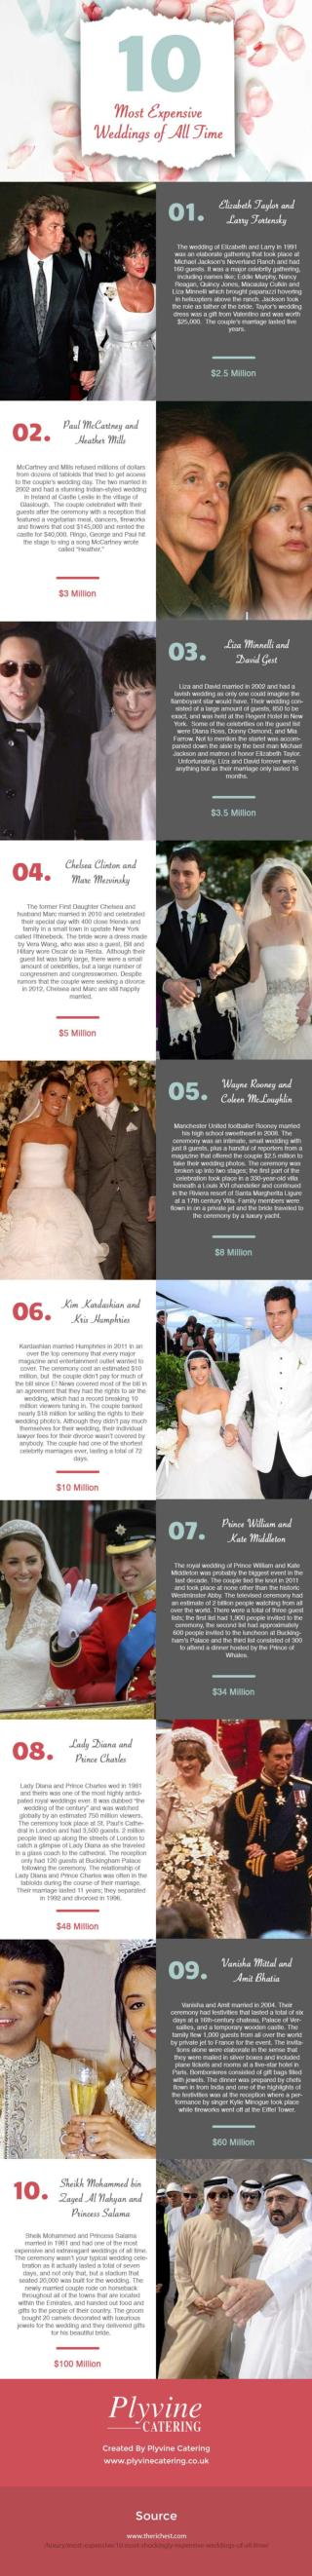 10 Most Expensive Weddings of All Time